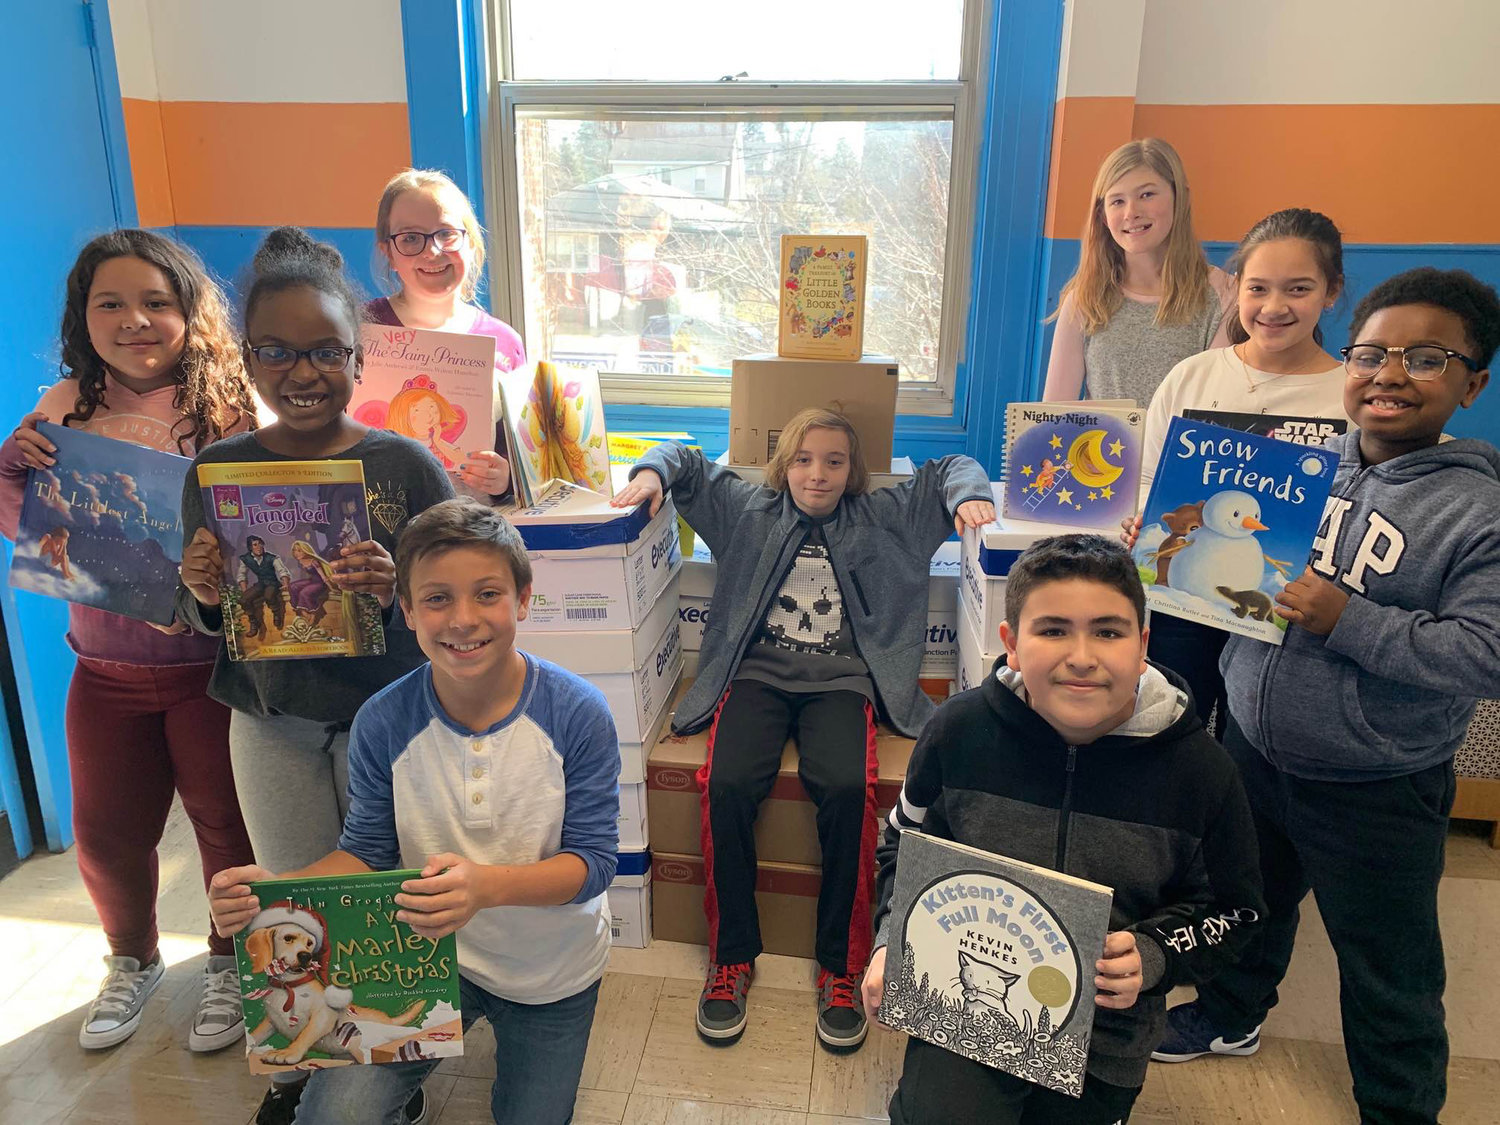 Students at Davison Avenue Intermediate School collected books to benefit The Book Fairies last month.